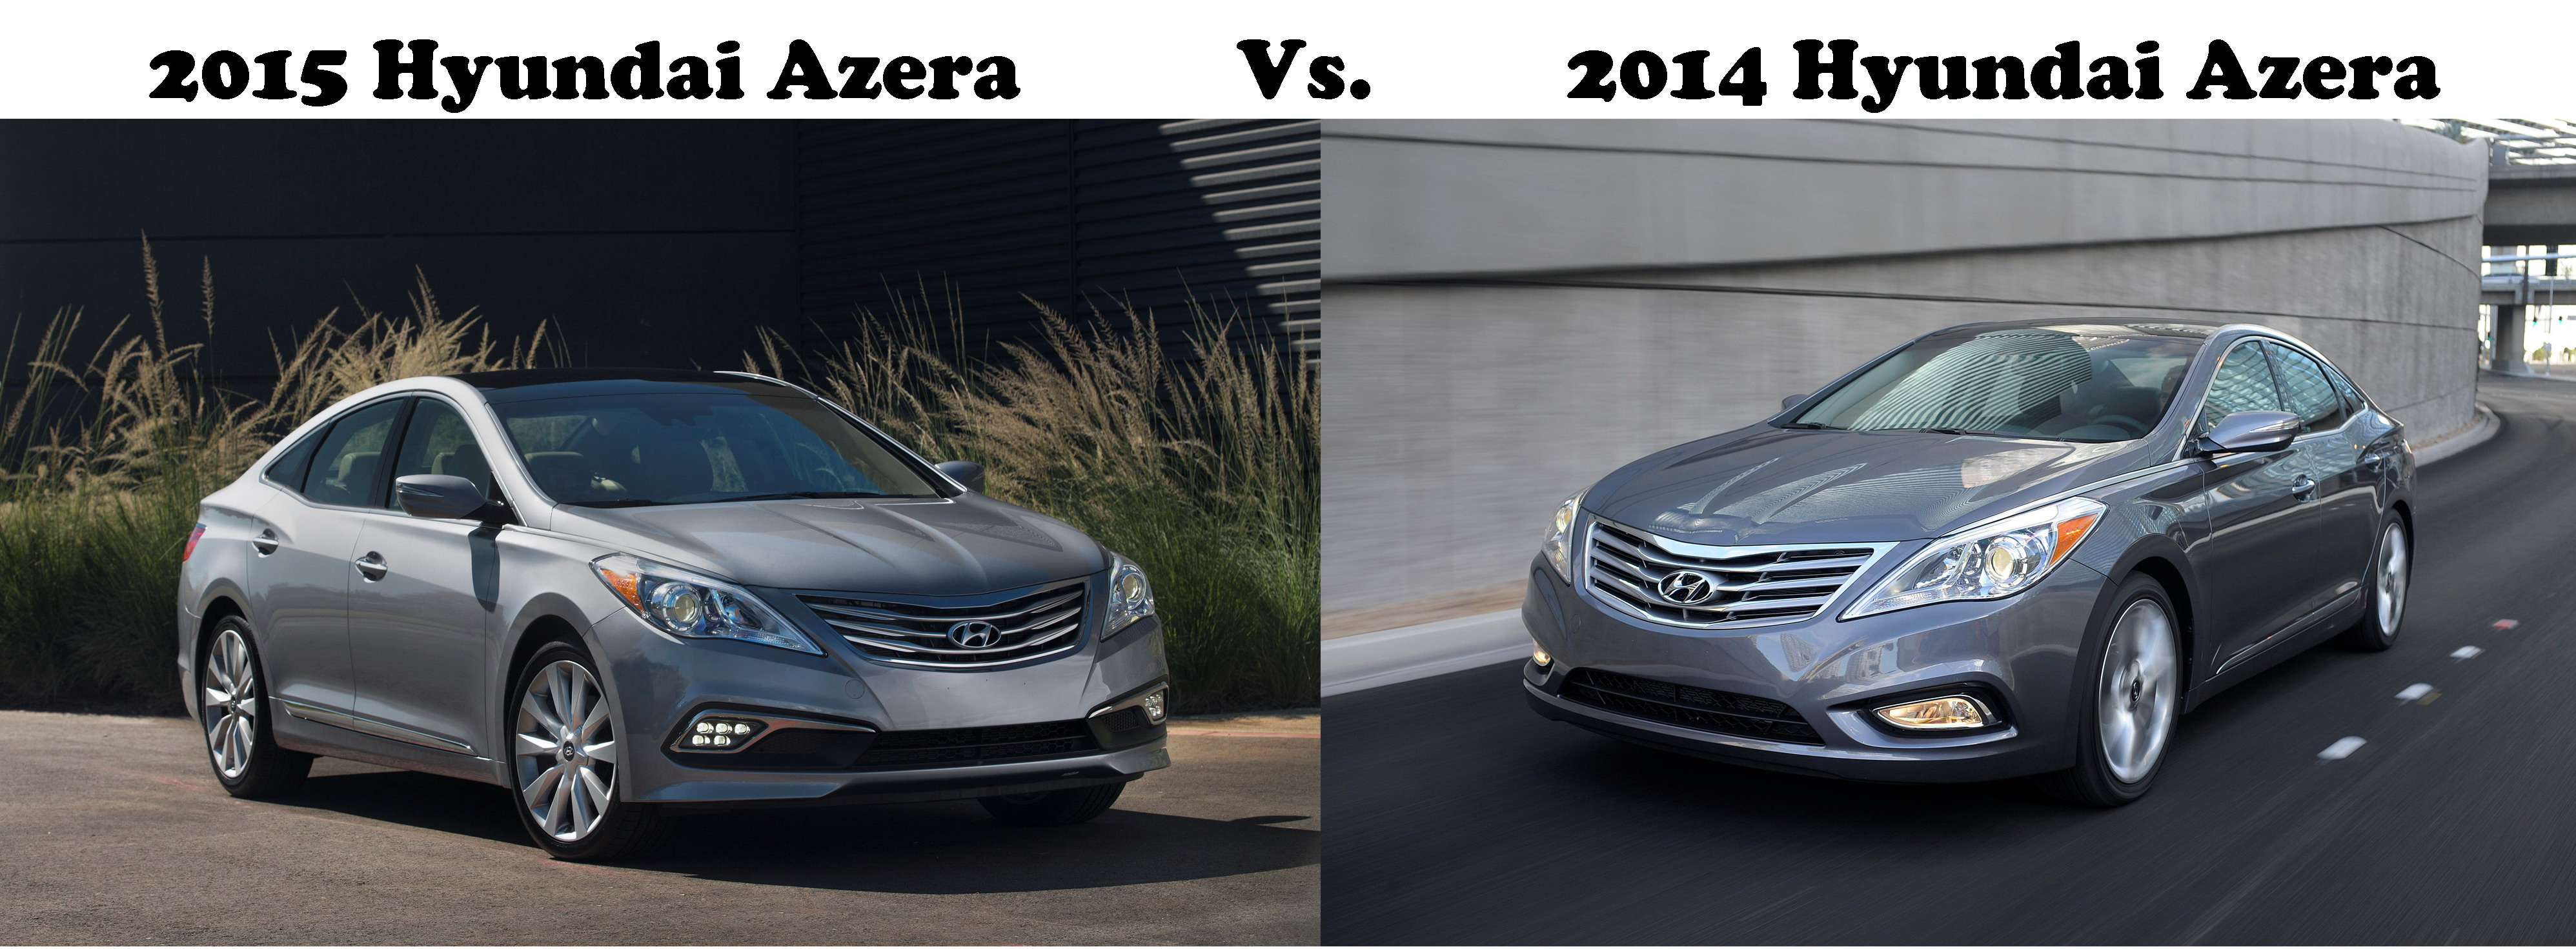 north at today in motor miami international first look annual america azera auto introduced show a american debut hyundai the